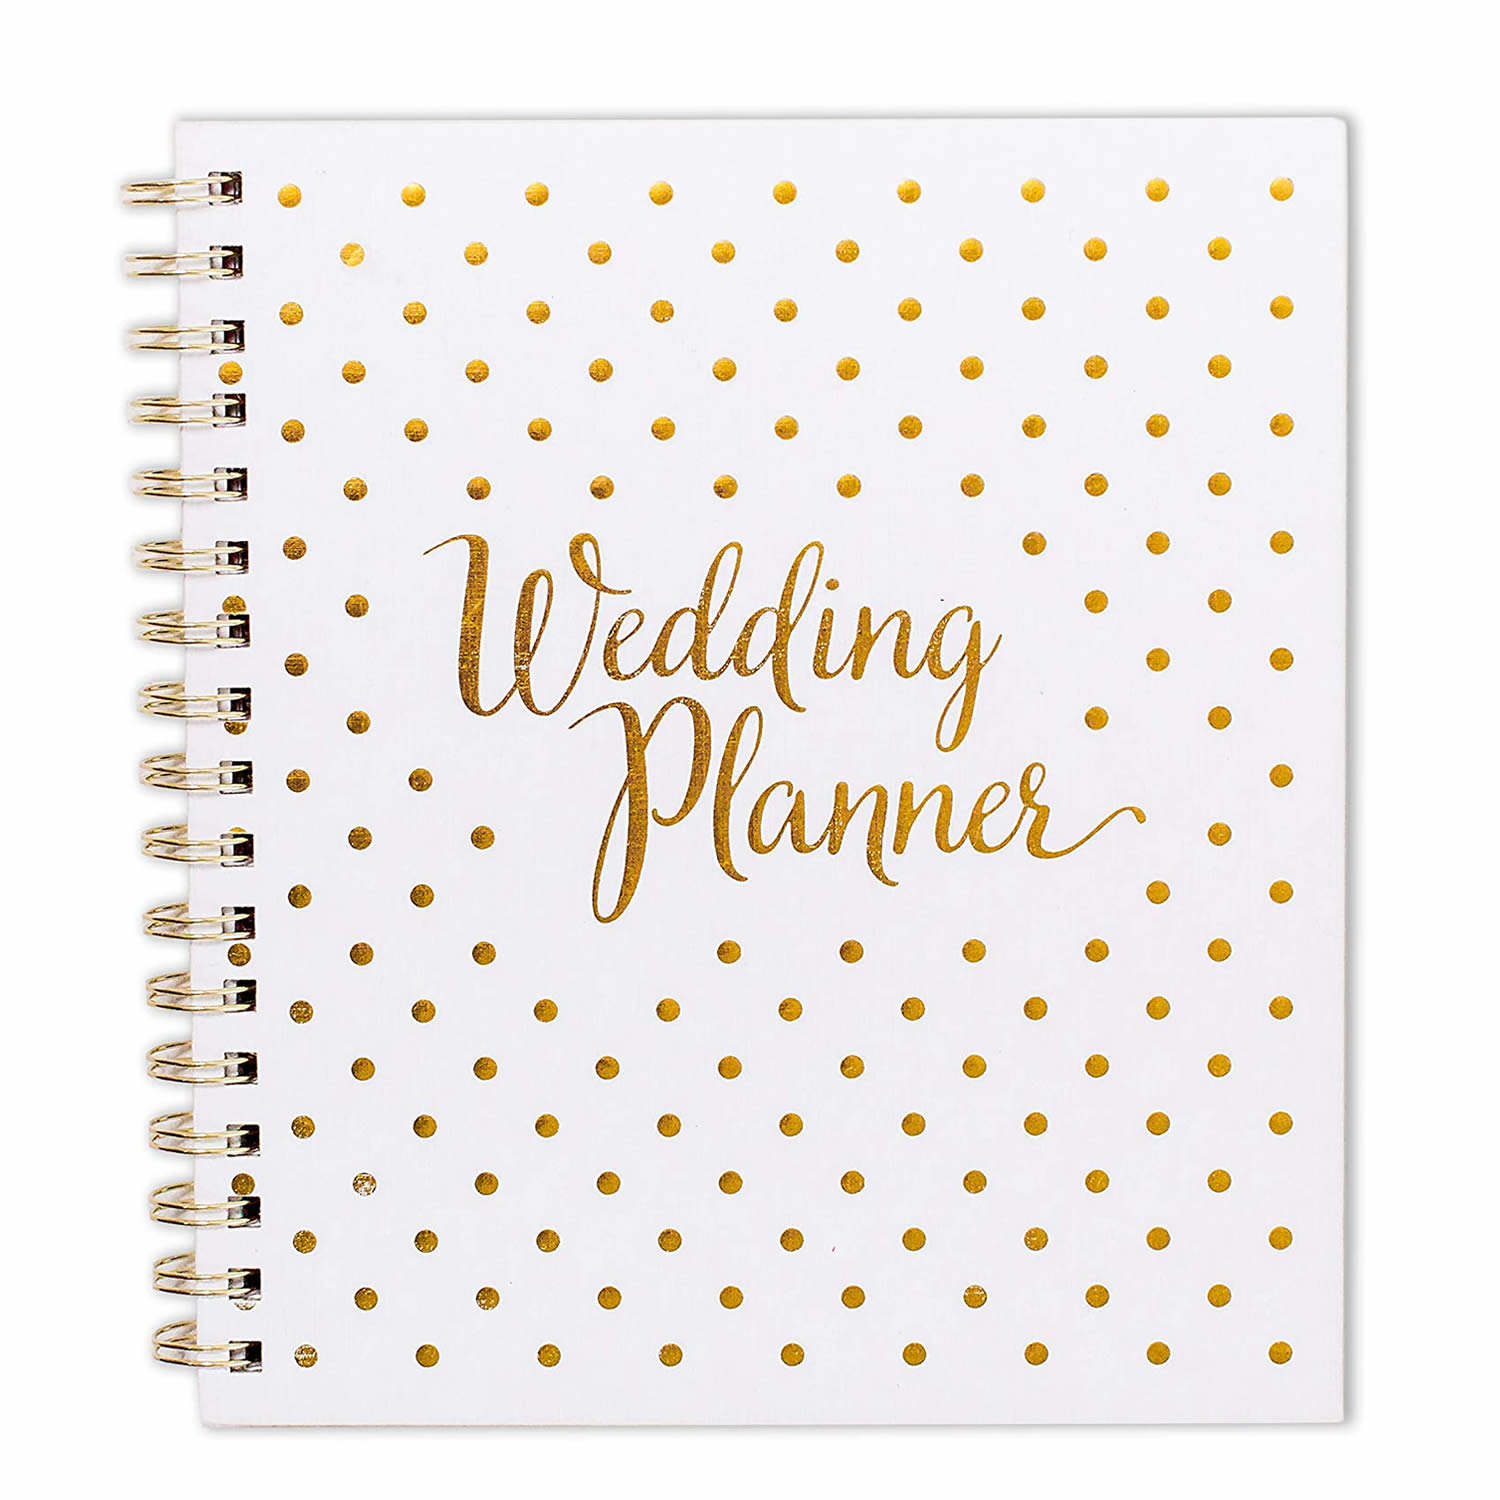 Custom-made Wedding Budget Planner Bridal Planning Book Journal Organising Diary